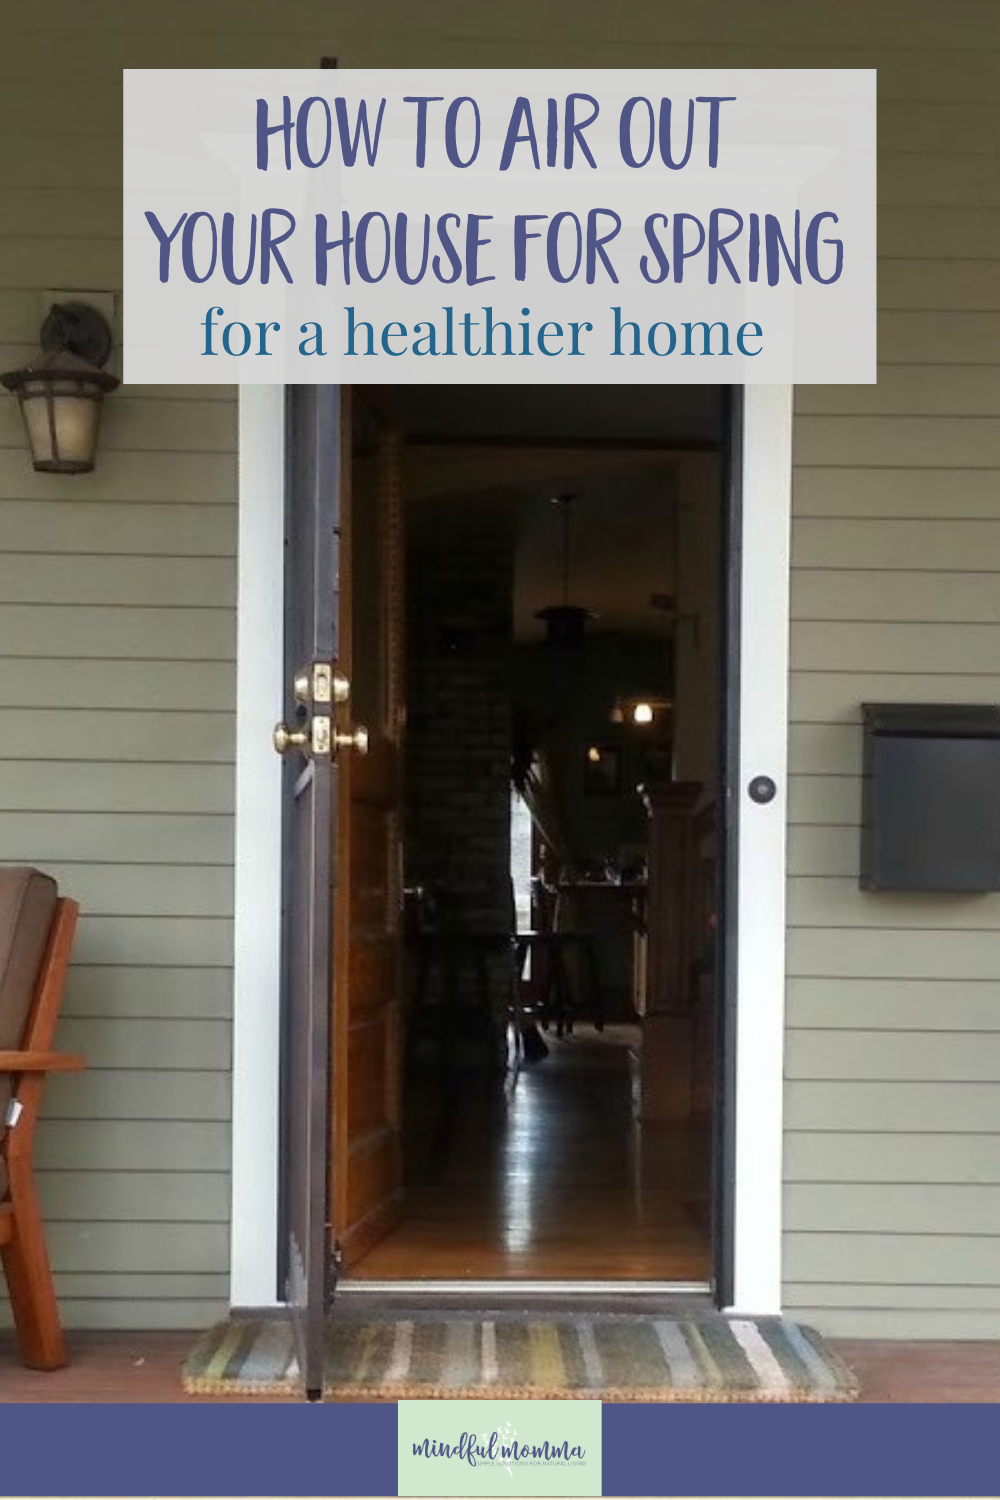 Learn easy ways to air out your house in the Spring to help improve the air quality in your home and create a healthy home environment. via @MindfulMomma